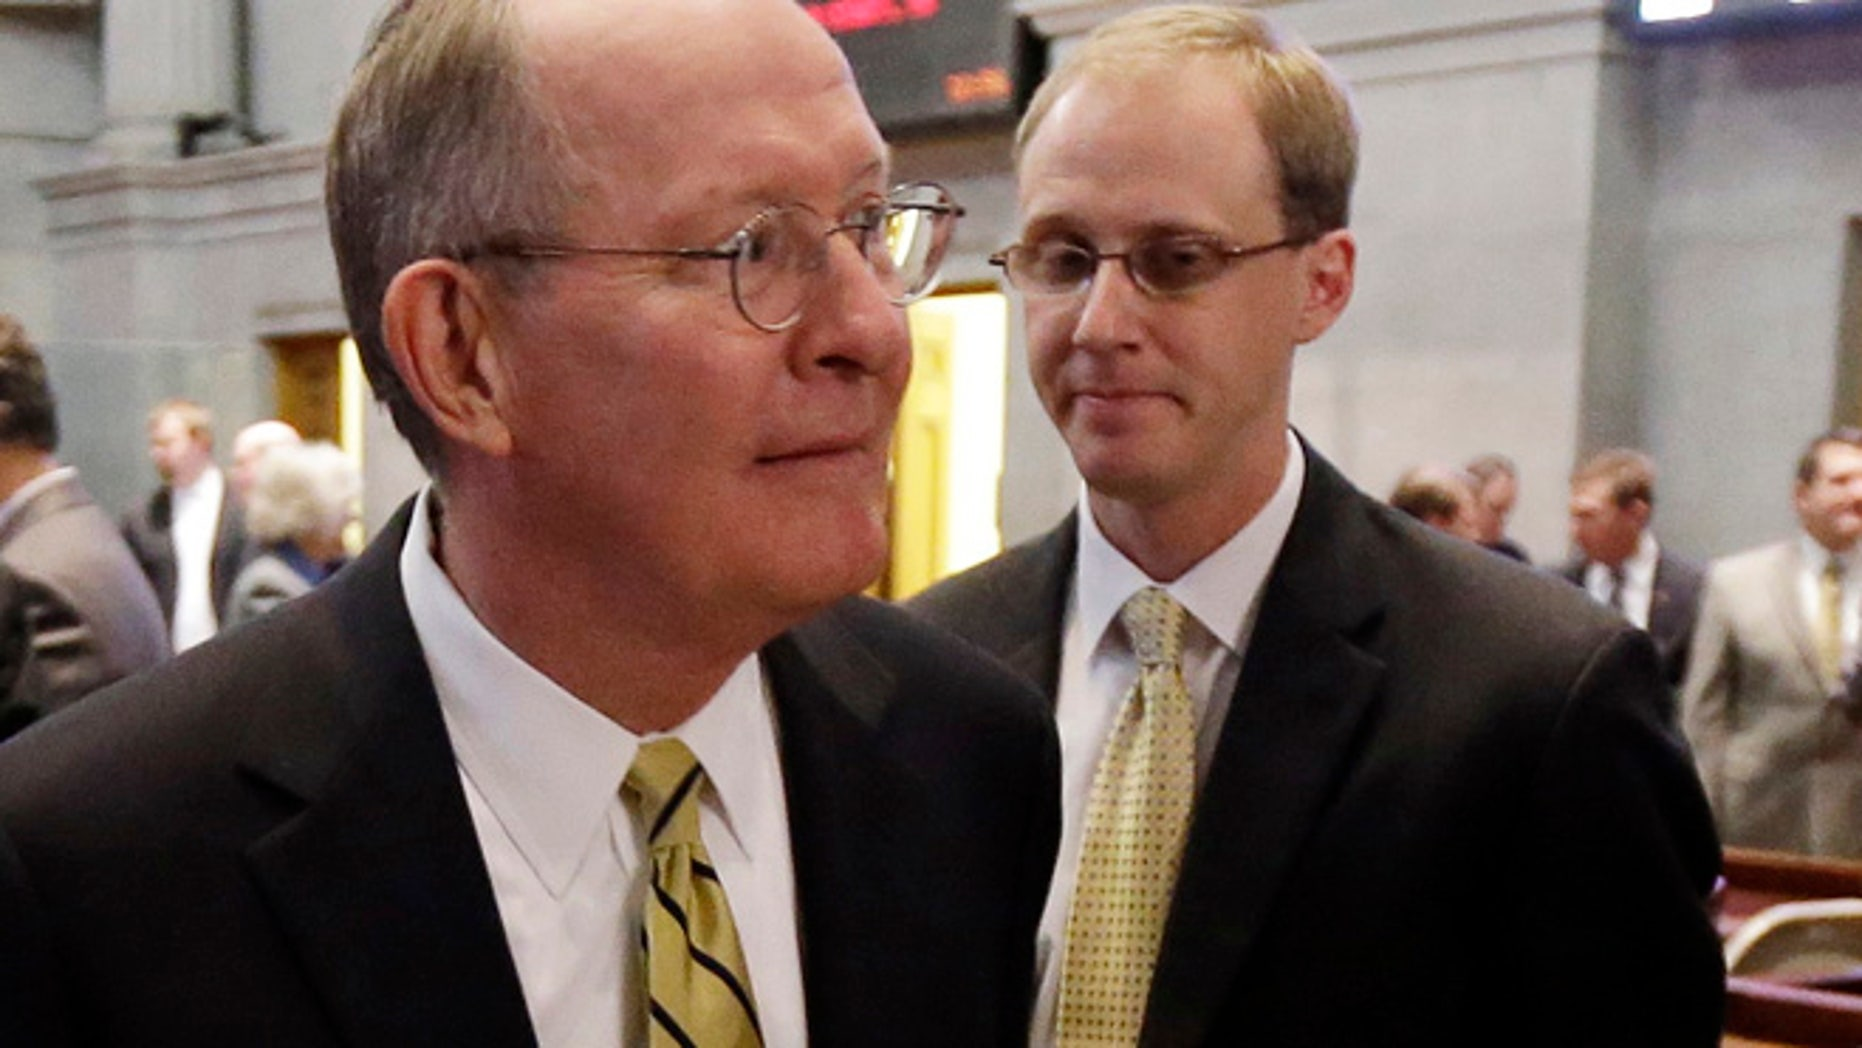 FILE 2013: Sen. Lamar Alexander, R-Tenn., left, leaving the Tennessee House of Representatives chamber with his then-chief of staff, Ryan Loskarn.